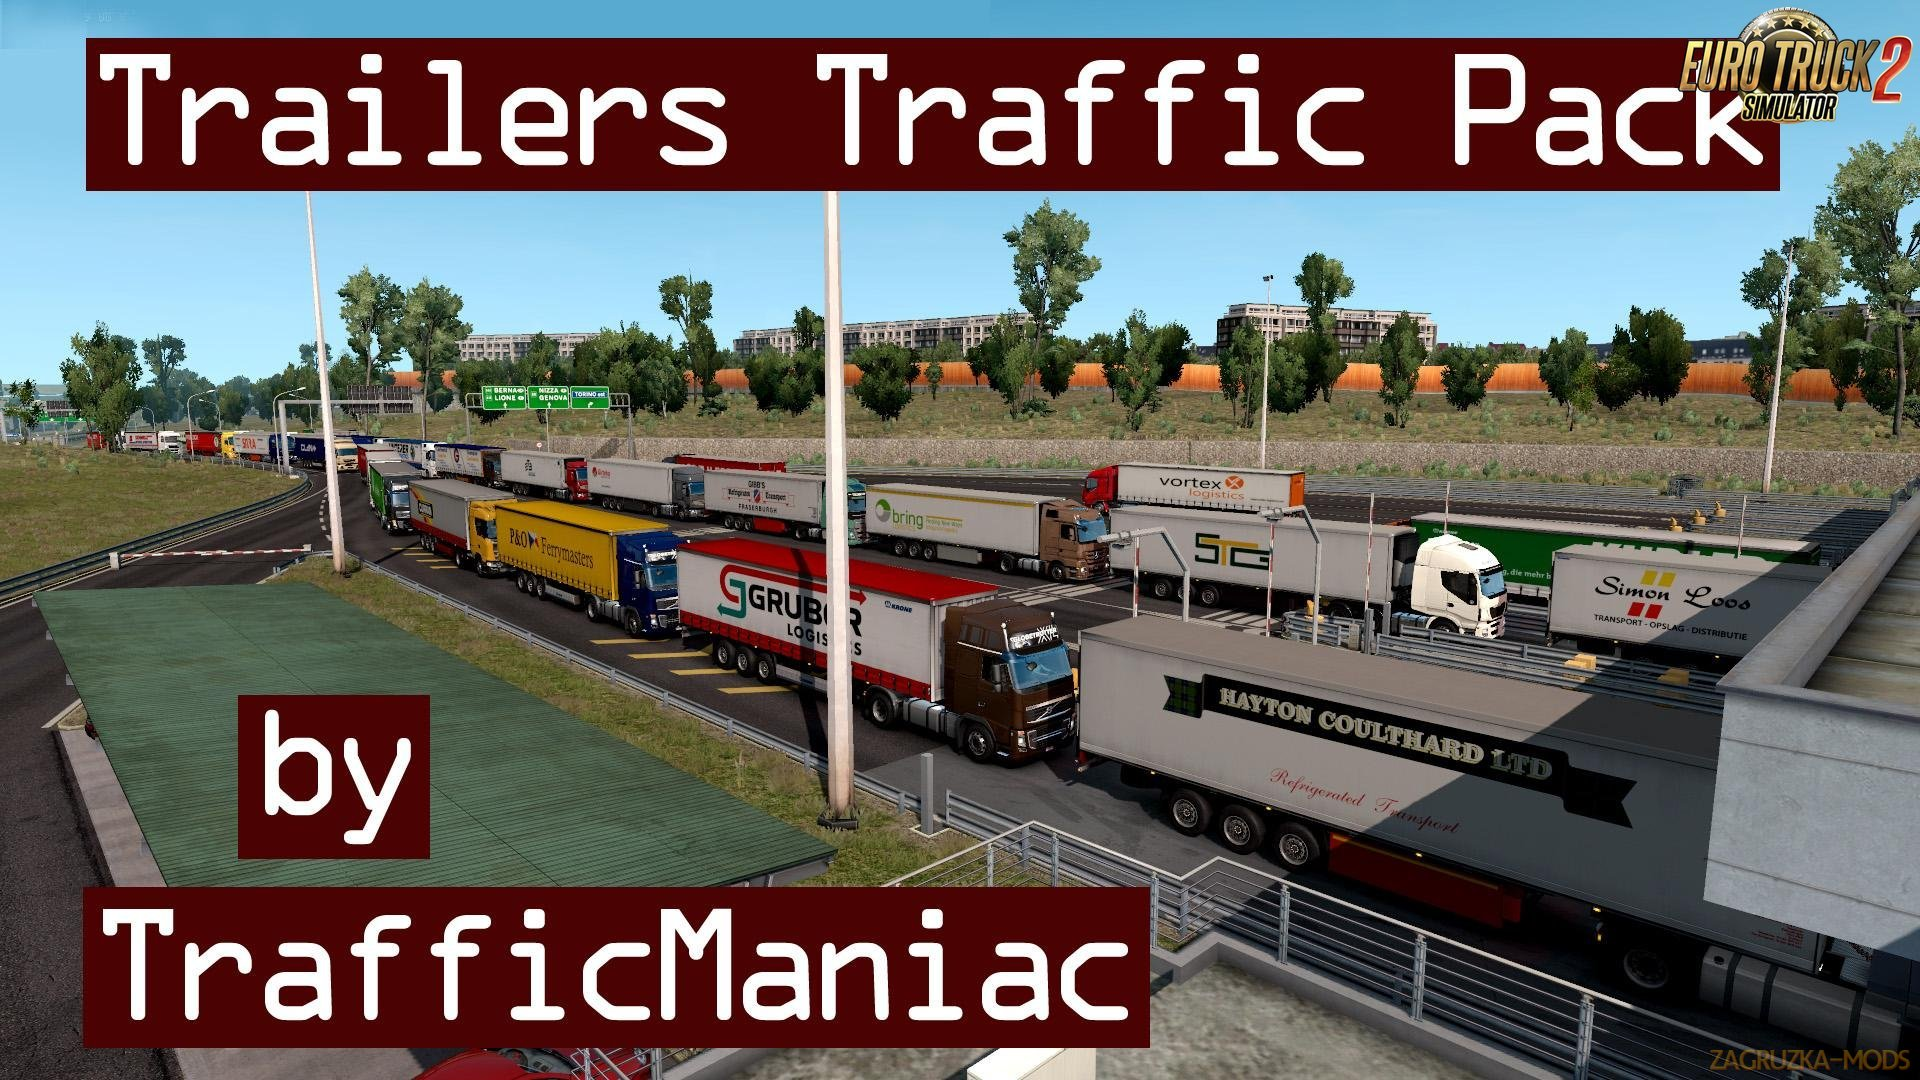 Trailers Traffic Pack v2.3 by TrafficManiac